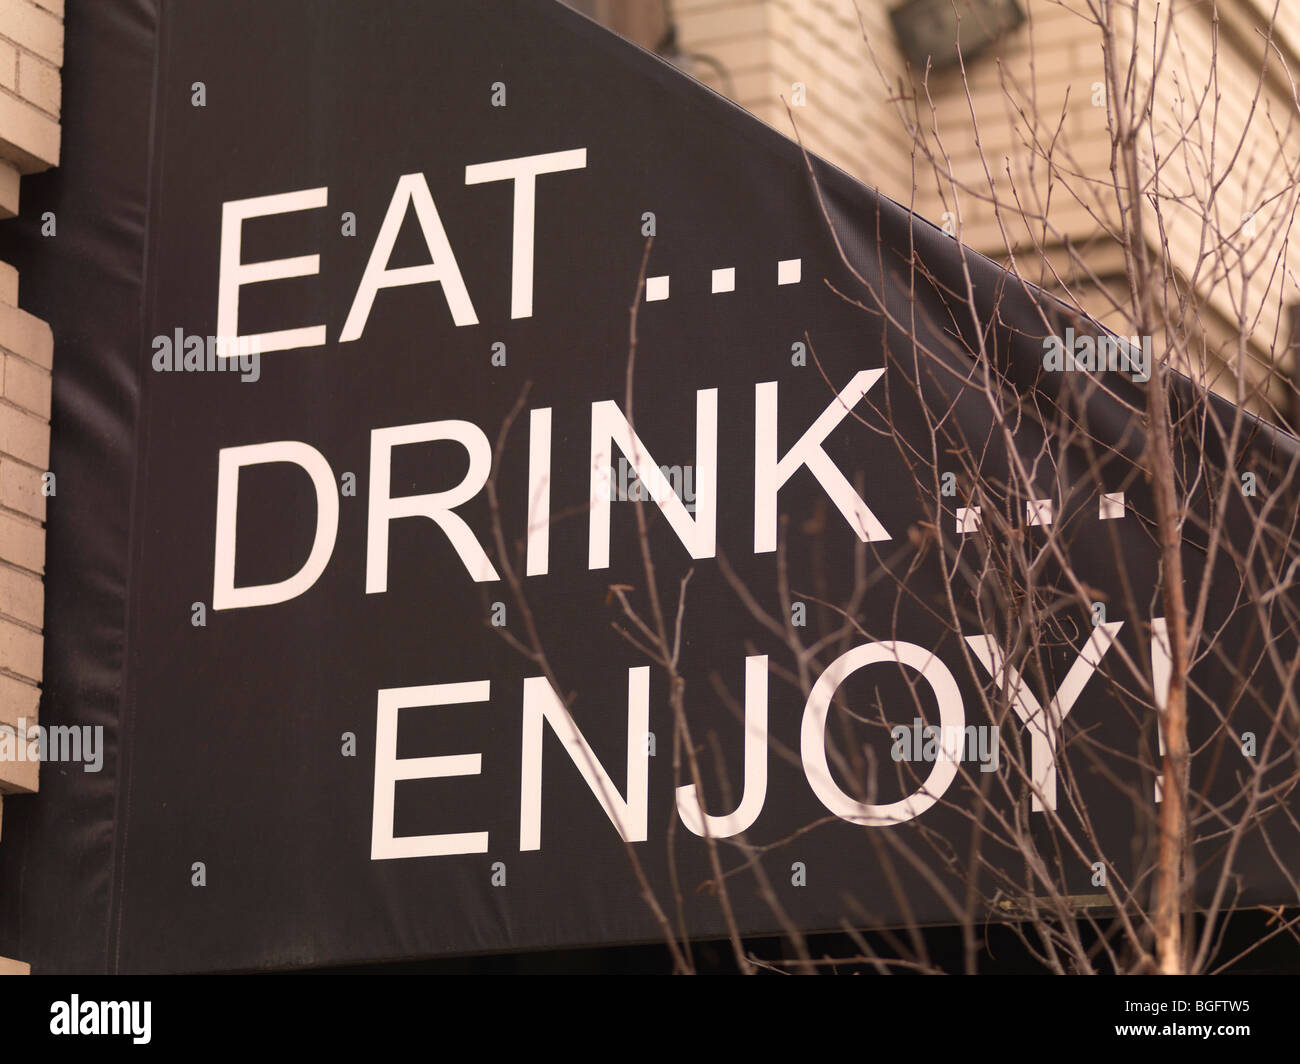 Message on restaurant canopy, Toronto, Ontario, Canada - Stock Image